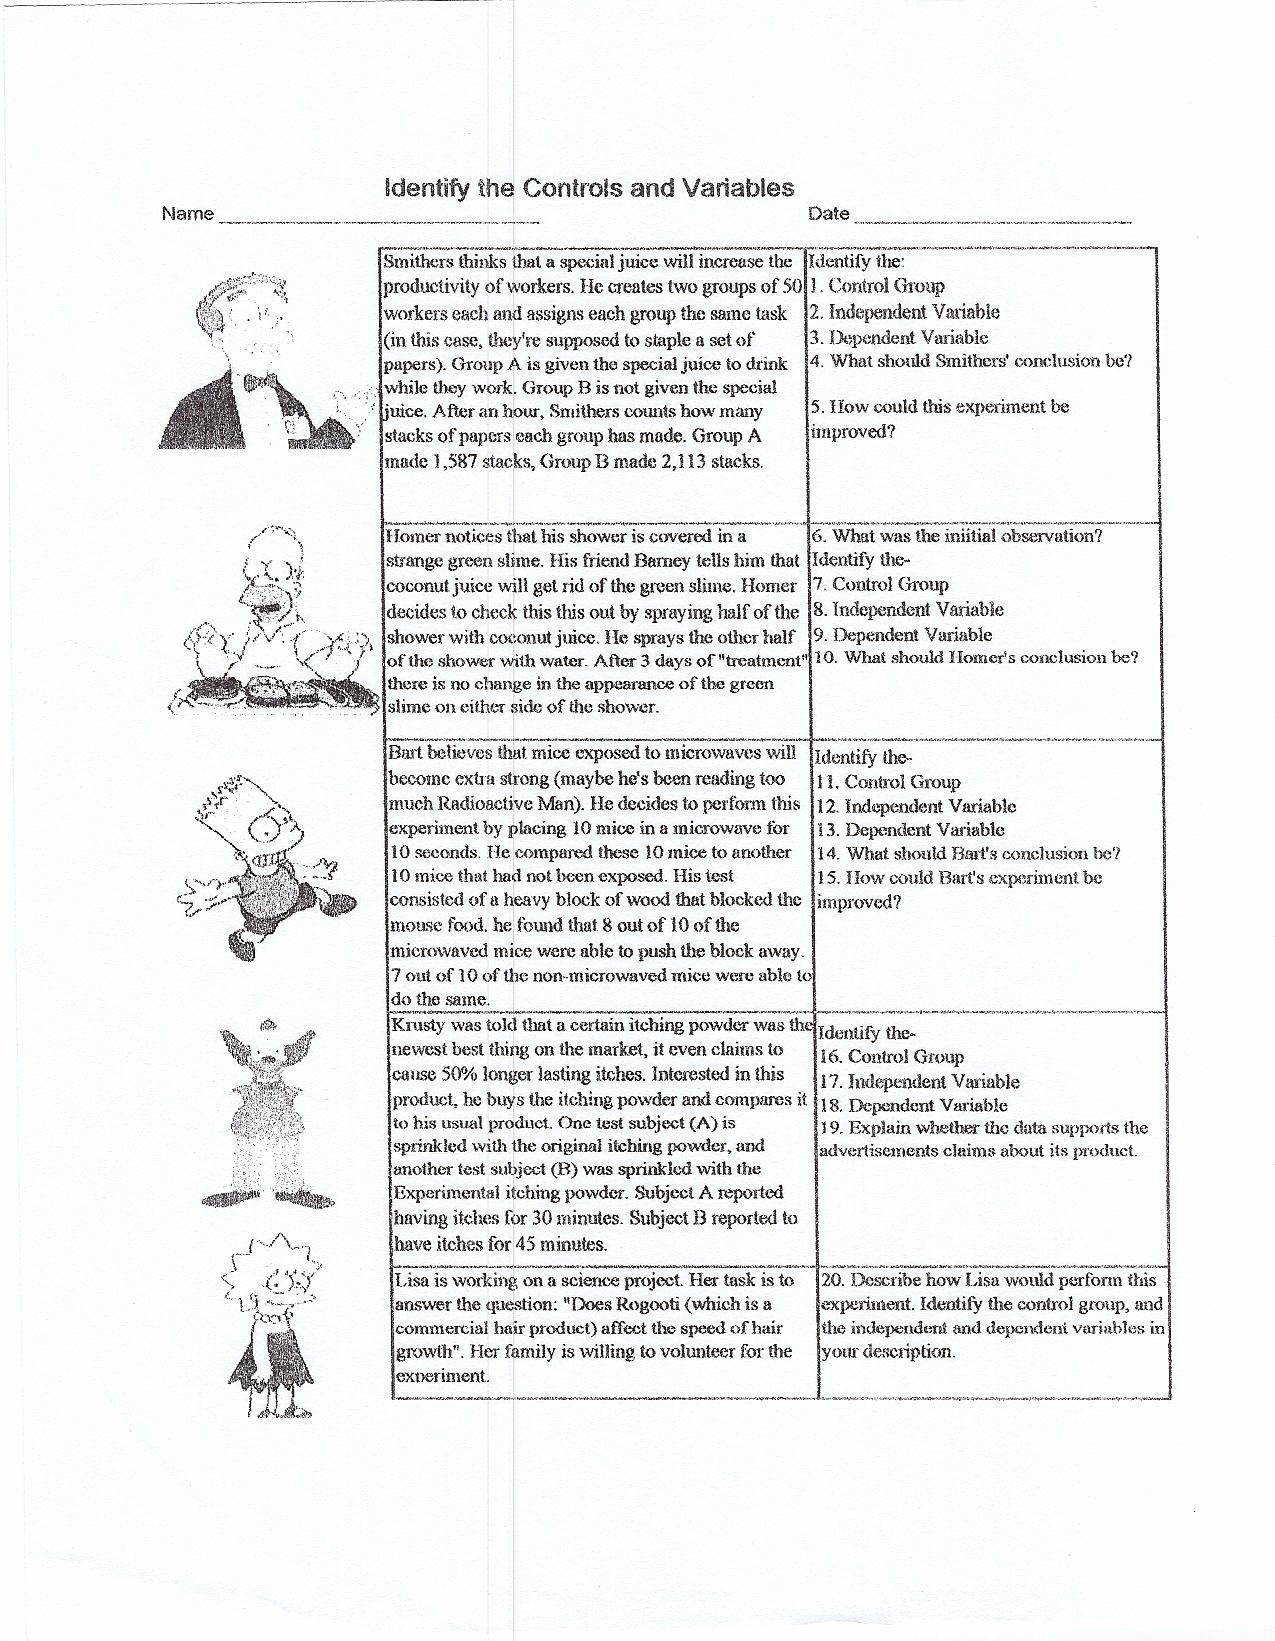 Identifying Variables Worksheet Middle School Best Of Independent and Dependent Variables Worksheet Middle School